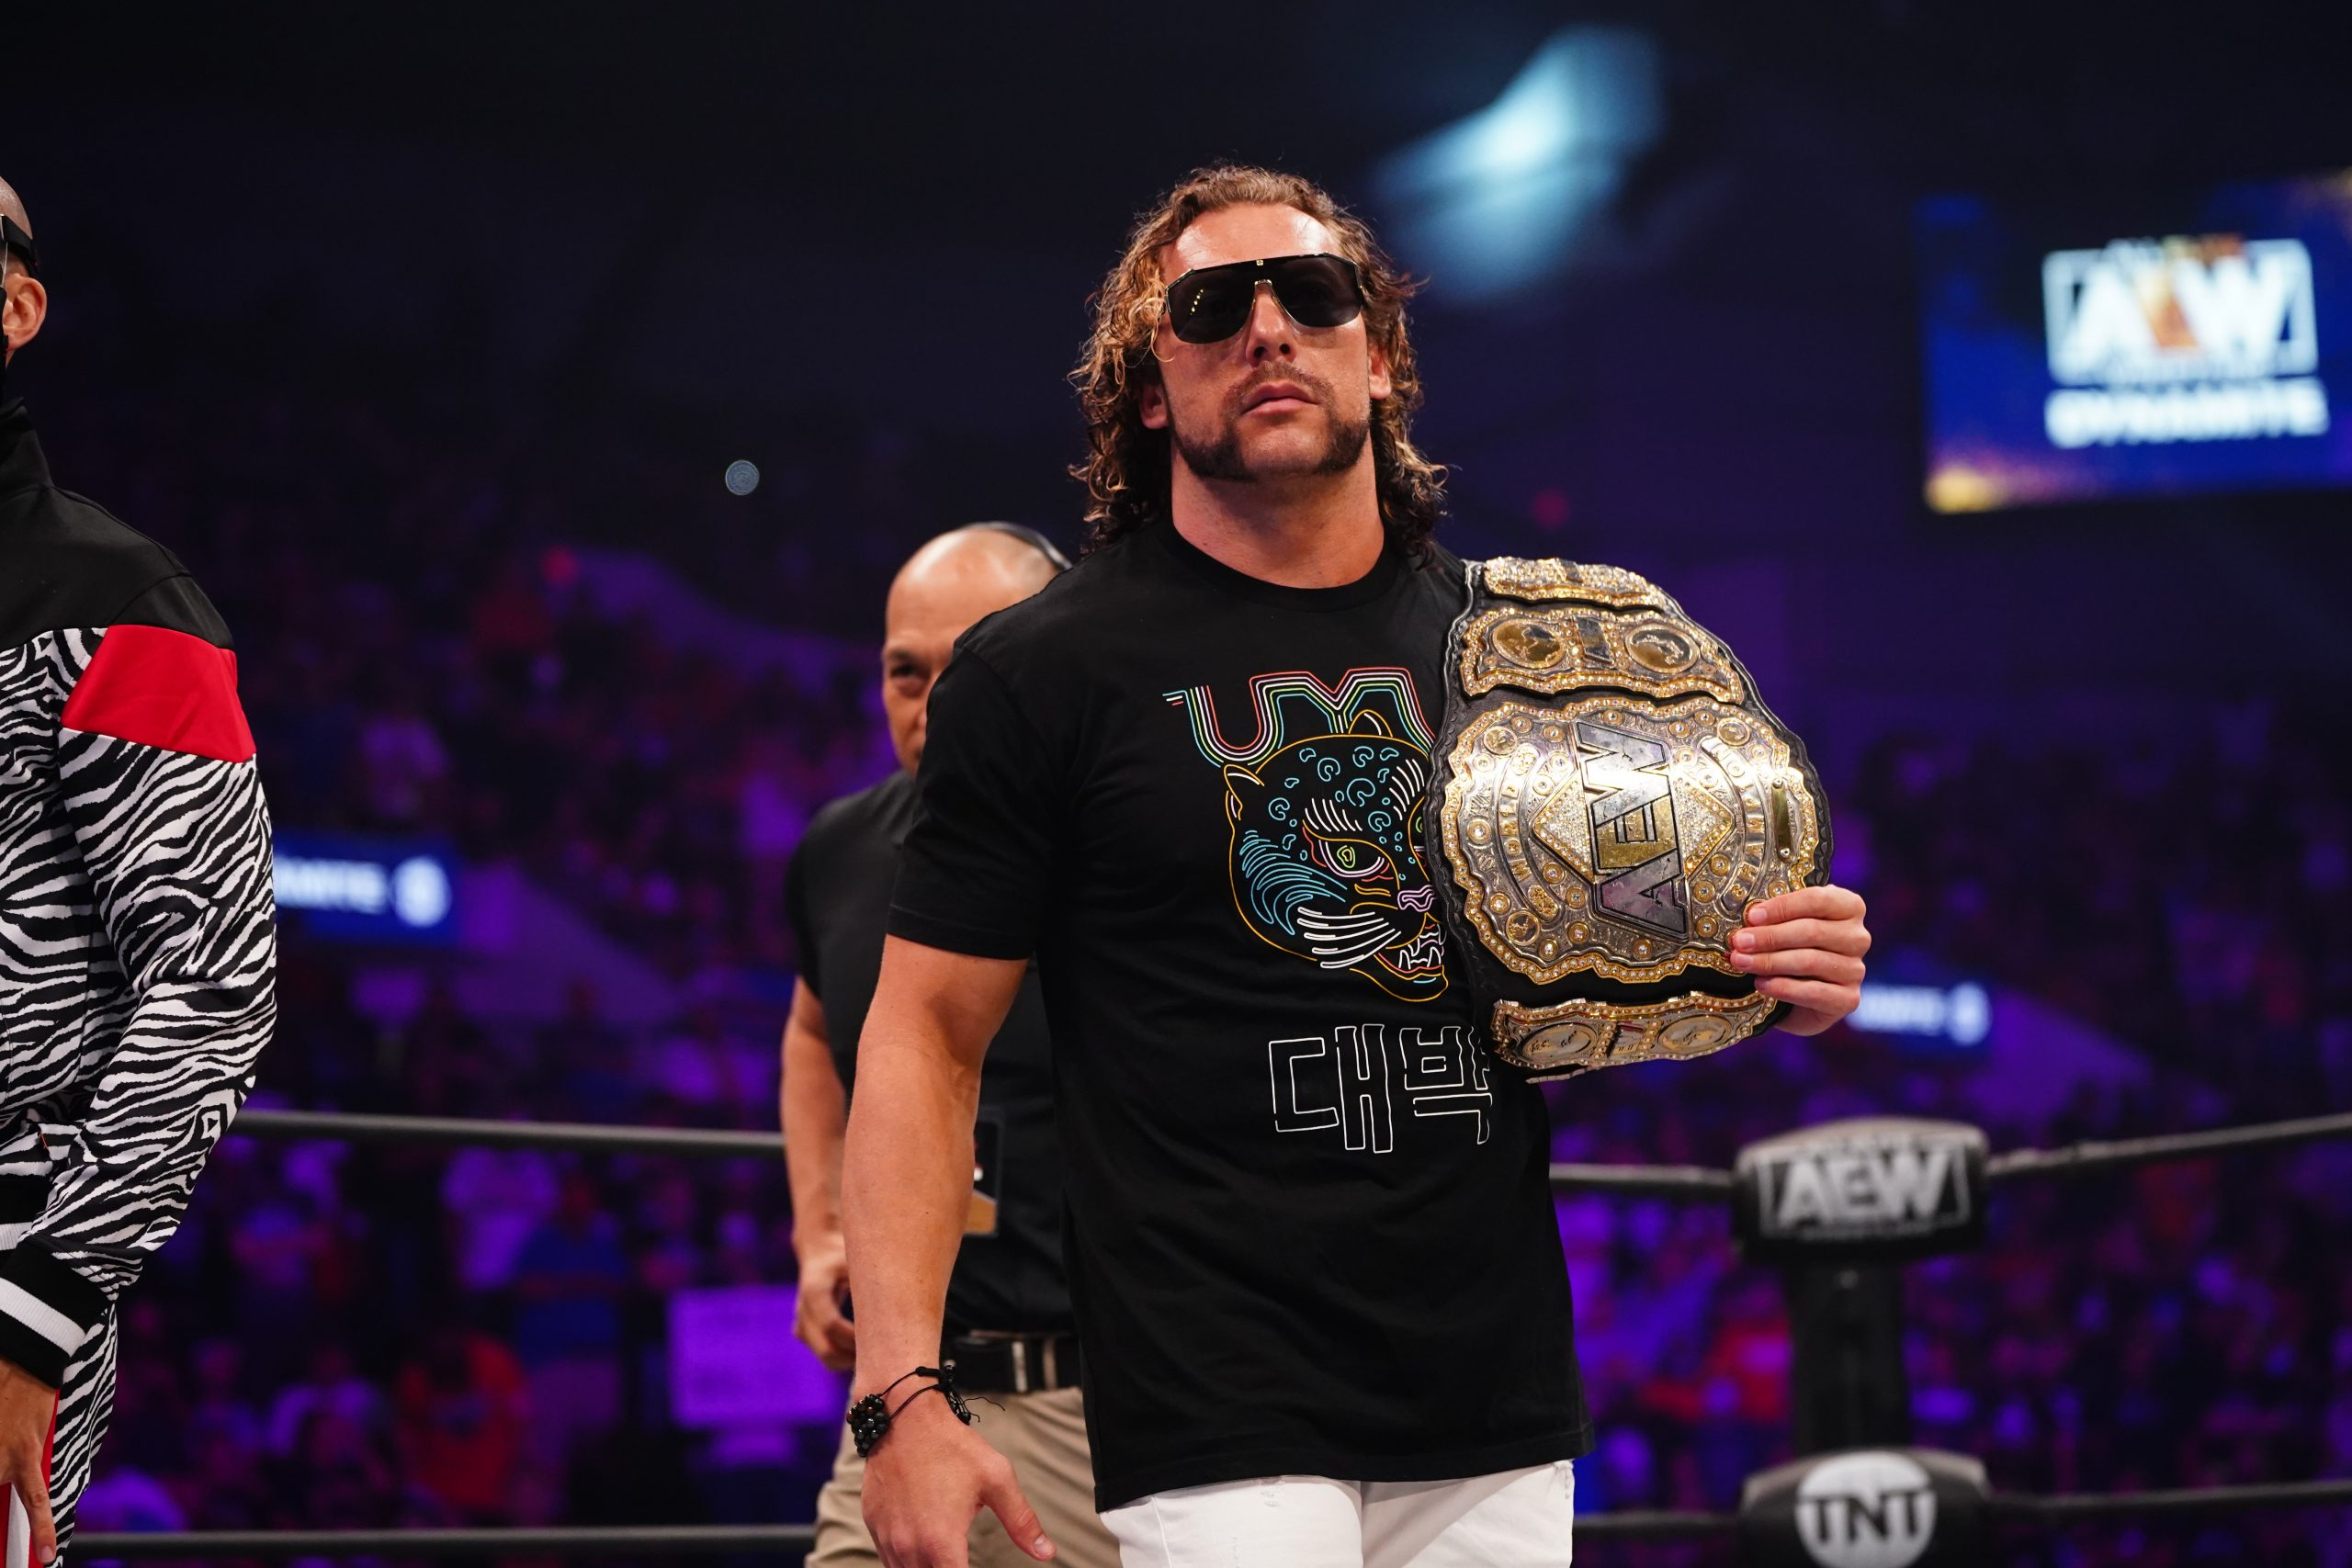 Kenny Omega Talks Wanting To End Tribalism With Pro Wrestling Fans